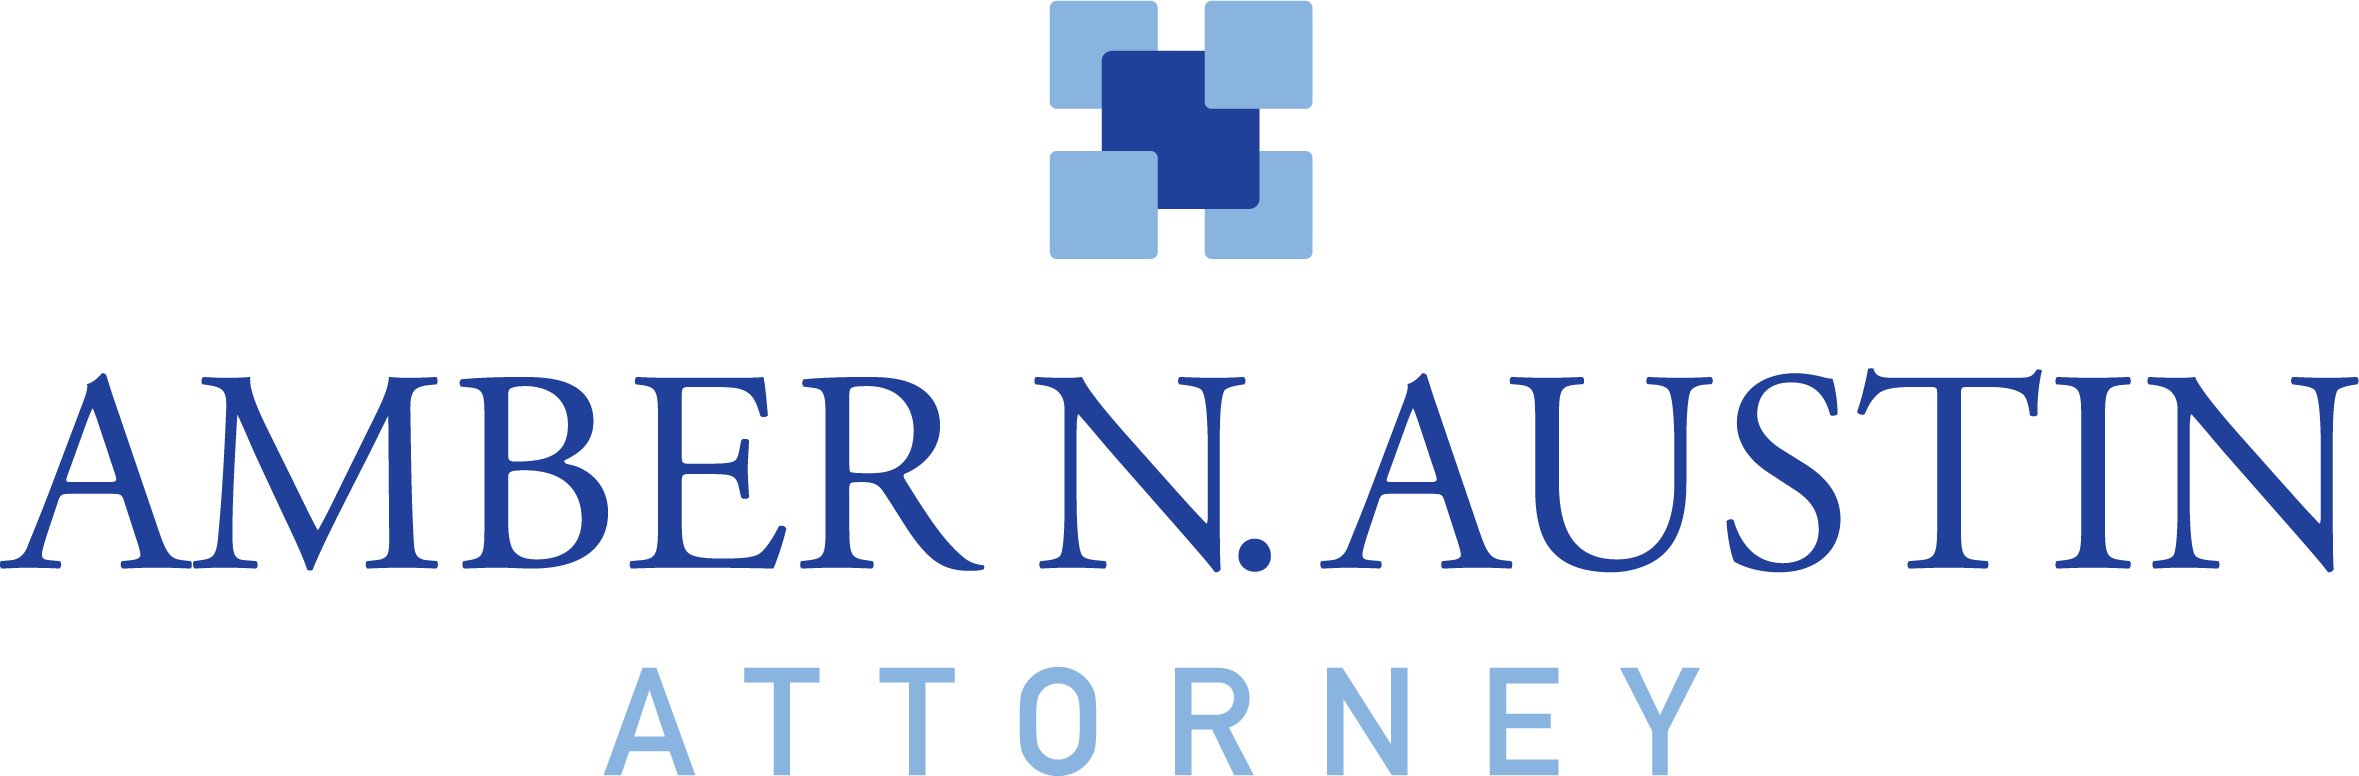 amber-n-austin-attorney-logo-full-color-rgb